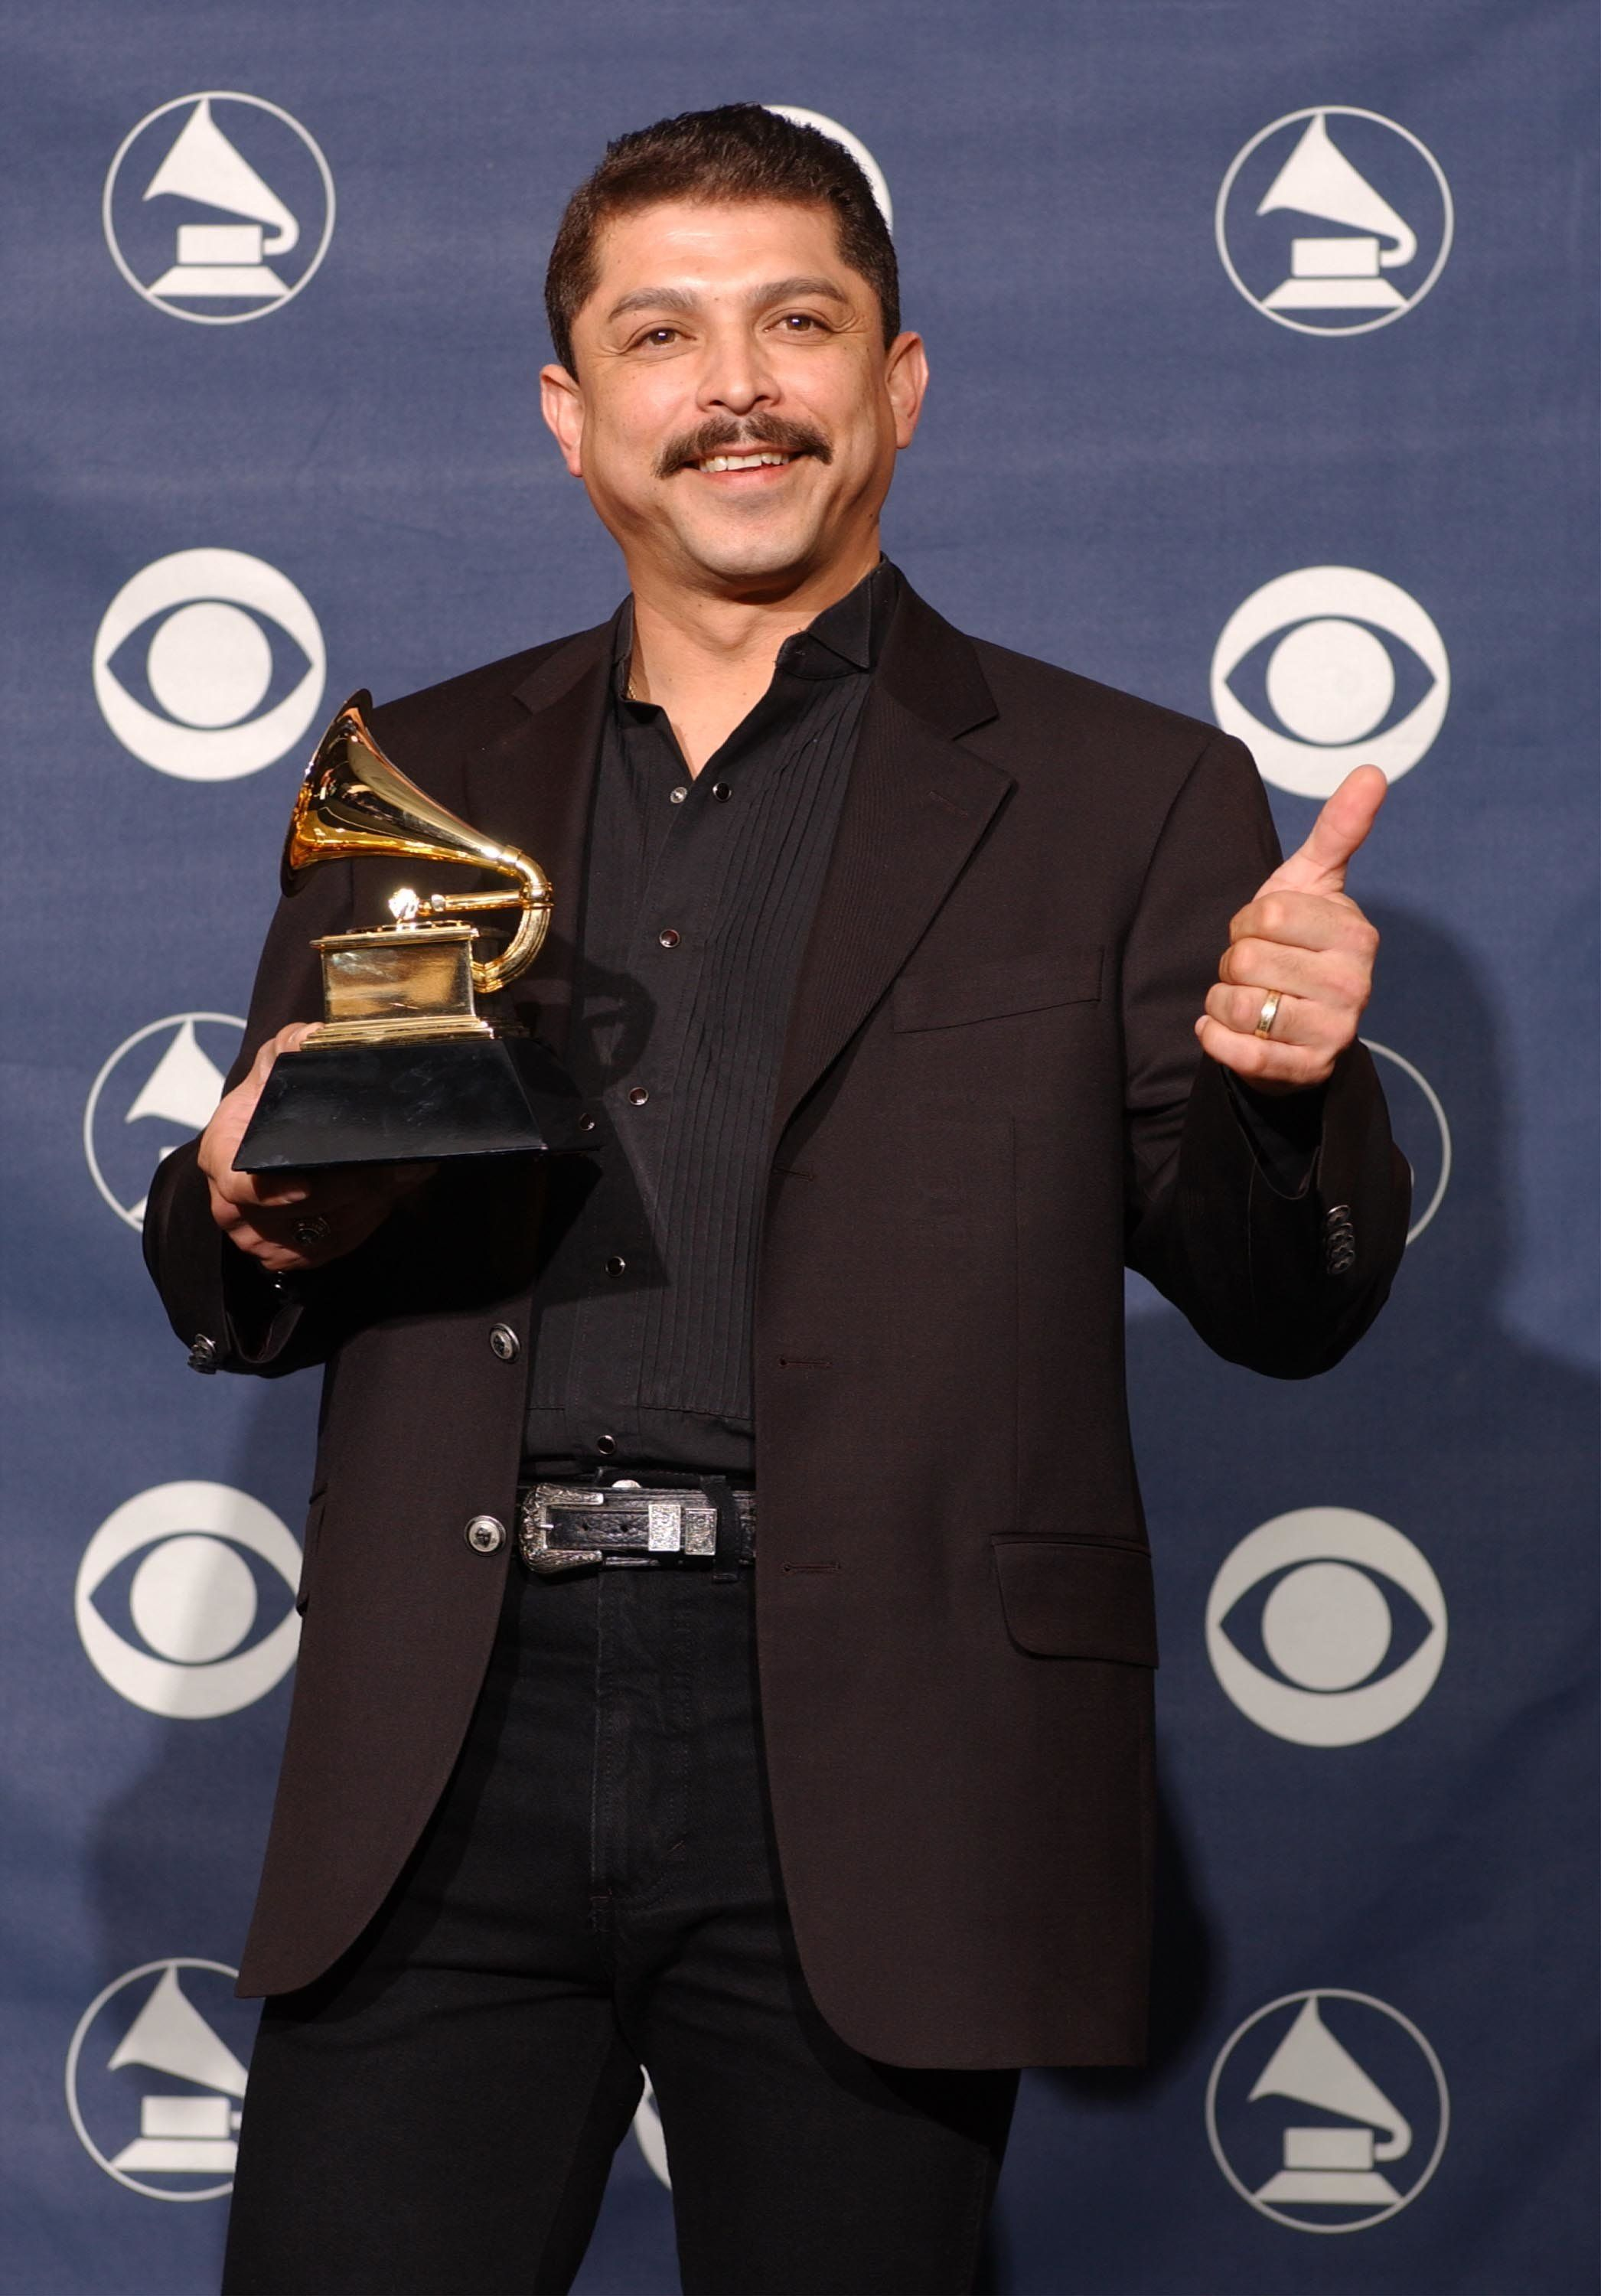 NEW YORK - FEBRUARY 23:  Winner for Best Tejano Album for 'Acuerdate', Emilio Navaira poses backstage at the 45th Annual Grammy Awards Pre-Telecast at Madison Square Garden on February 23, 2003 in New York City.  (Photo by Mark Mainz/Getty Images)